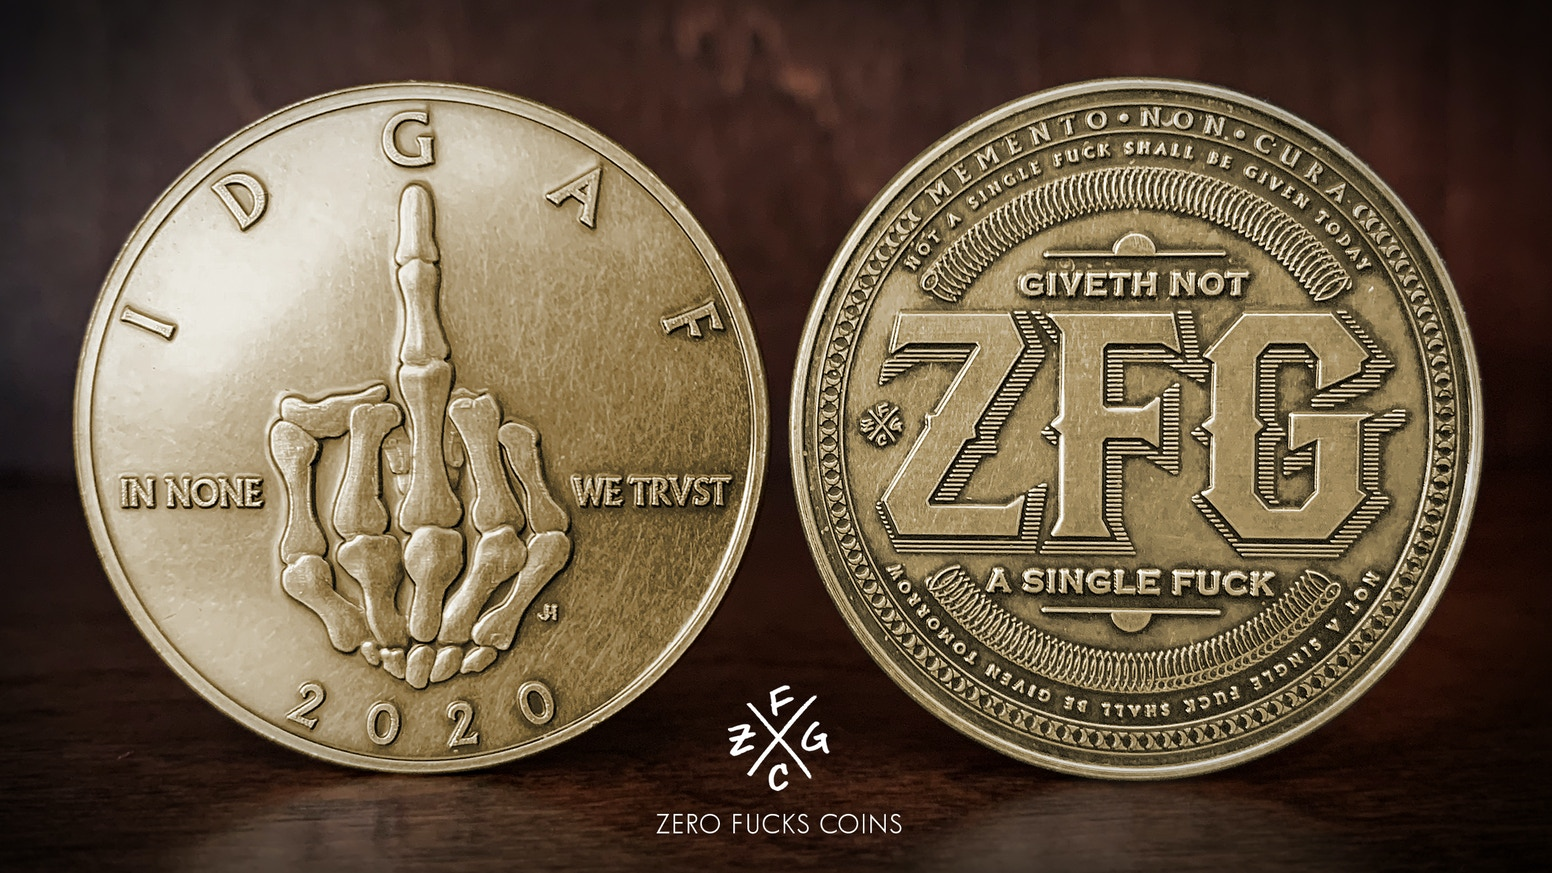 Badass coins to remind yourself to keep calm and not give a fuck.